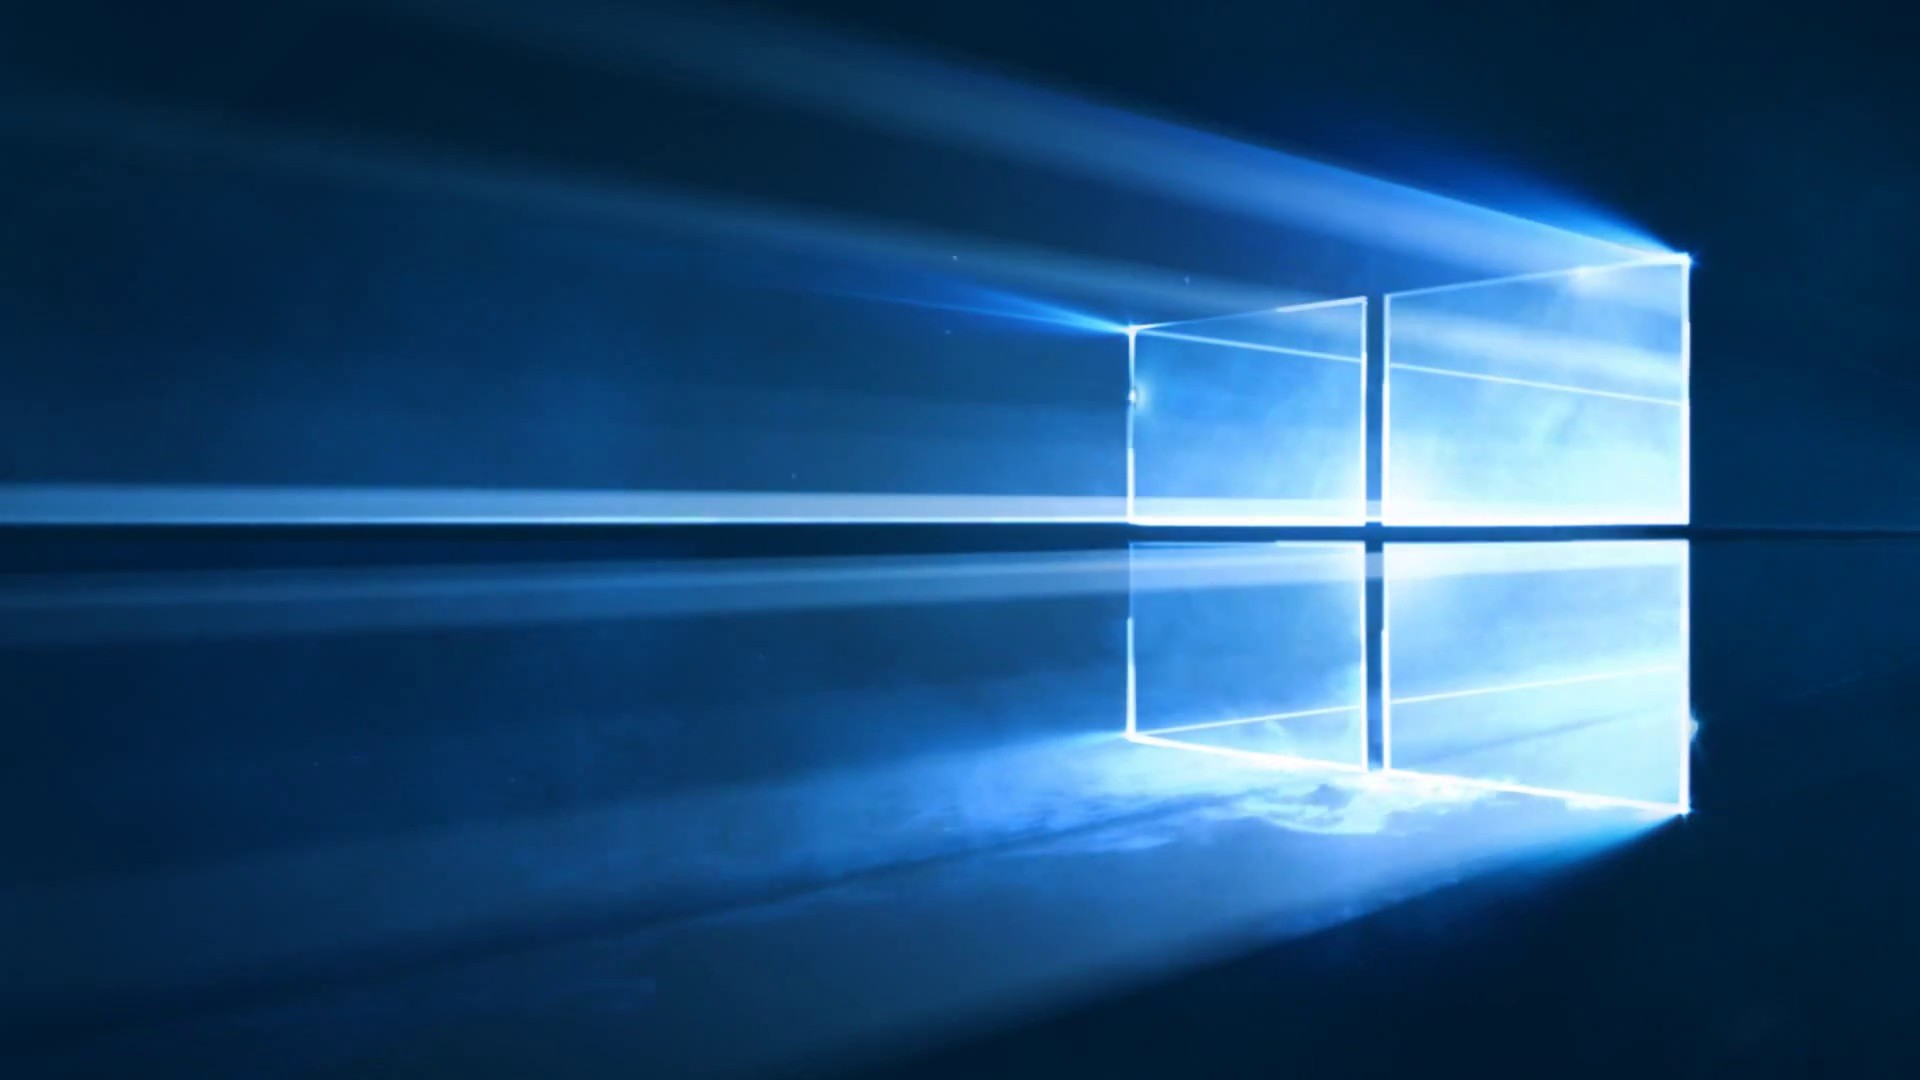 Amazing Windows 10 Pictures & Backgrounds